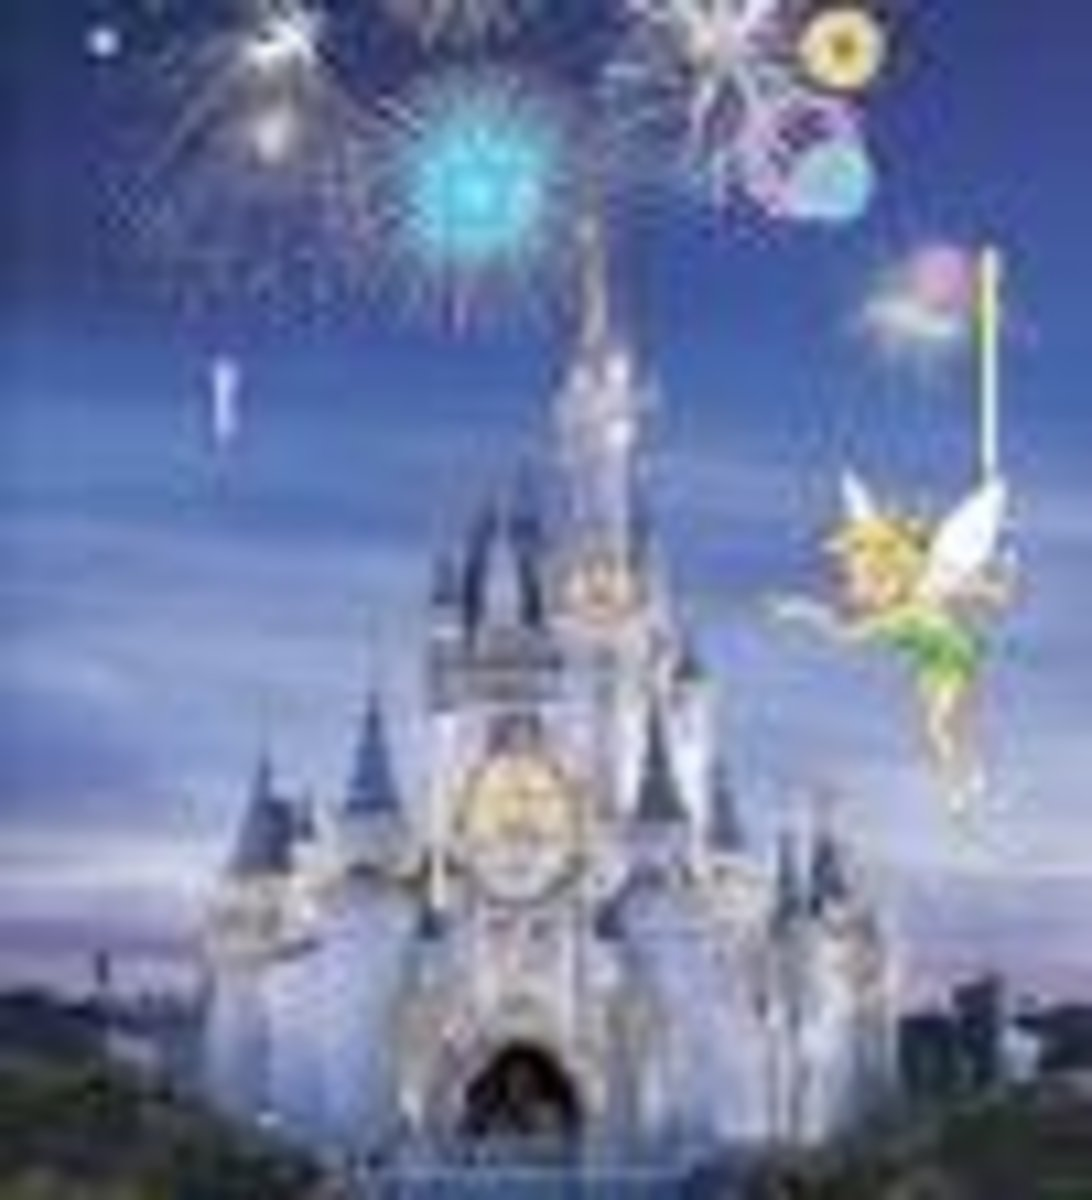 The magical world of Disney!